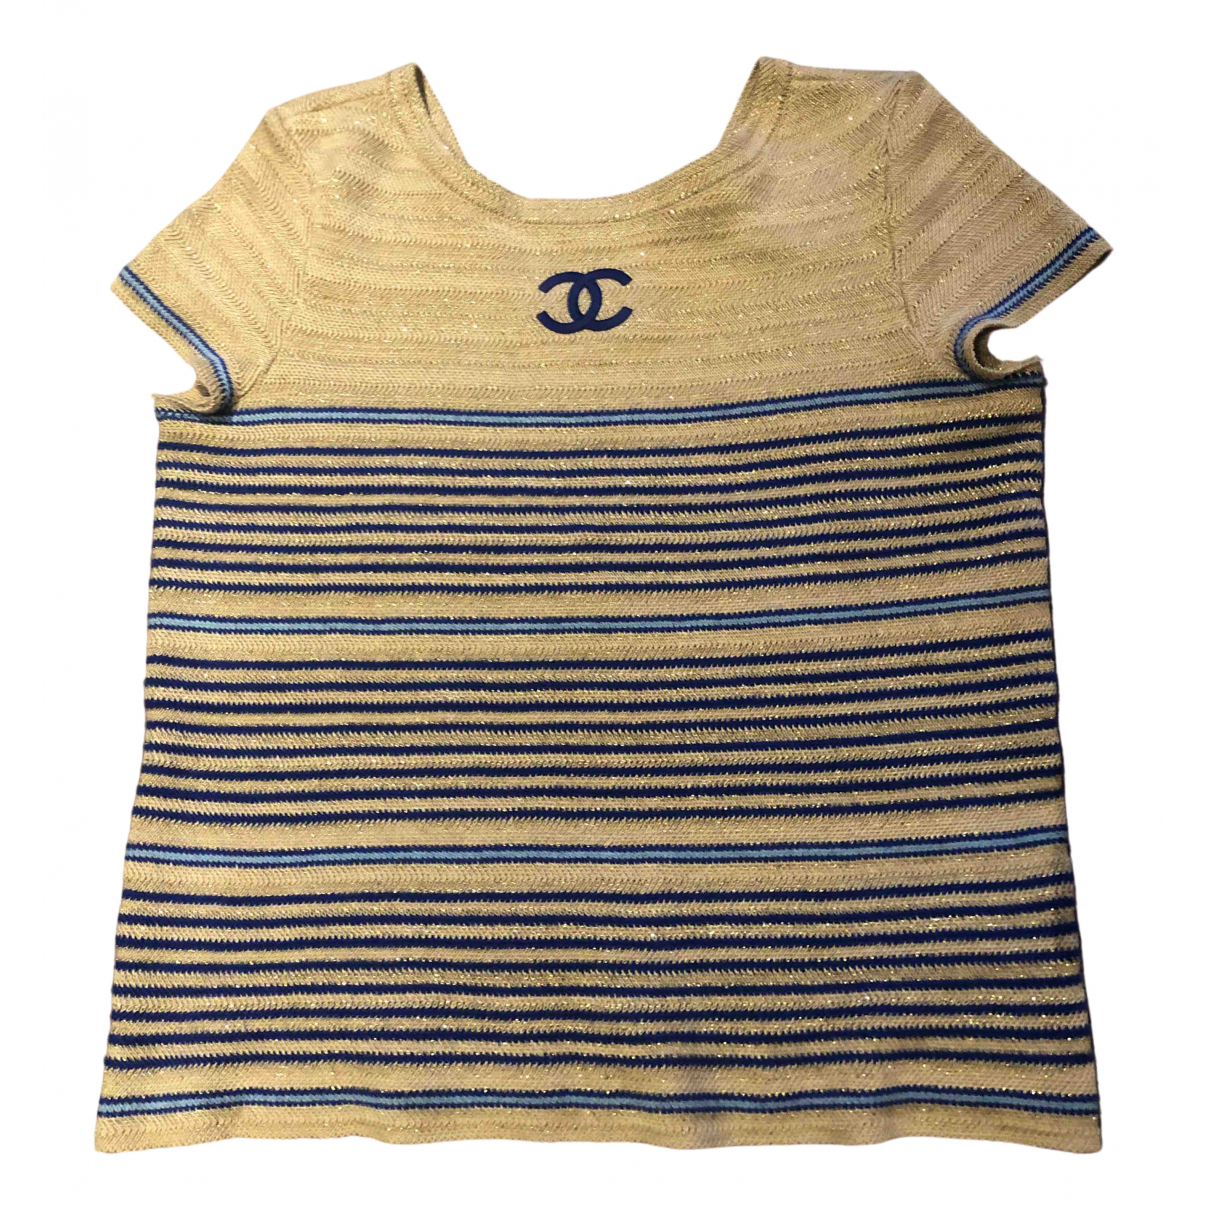 Chanel \N Gold Tweed  top for Women 40 FR